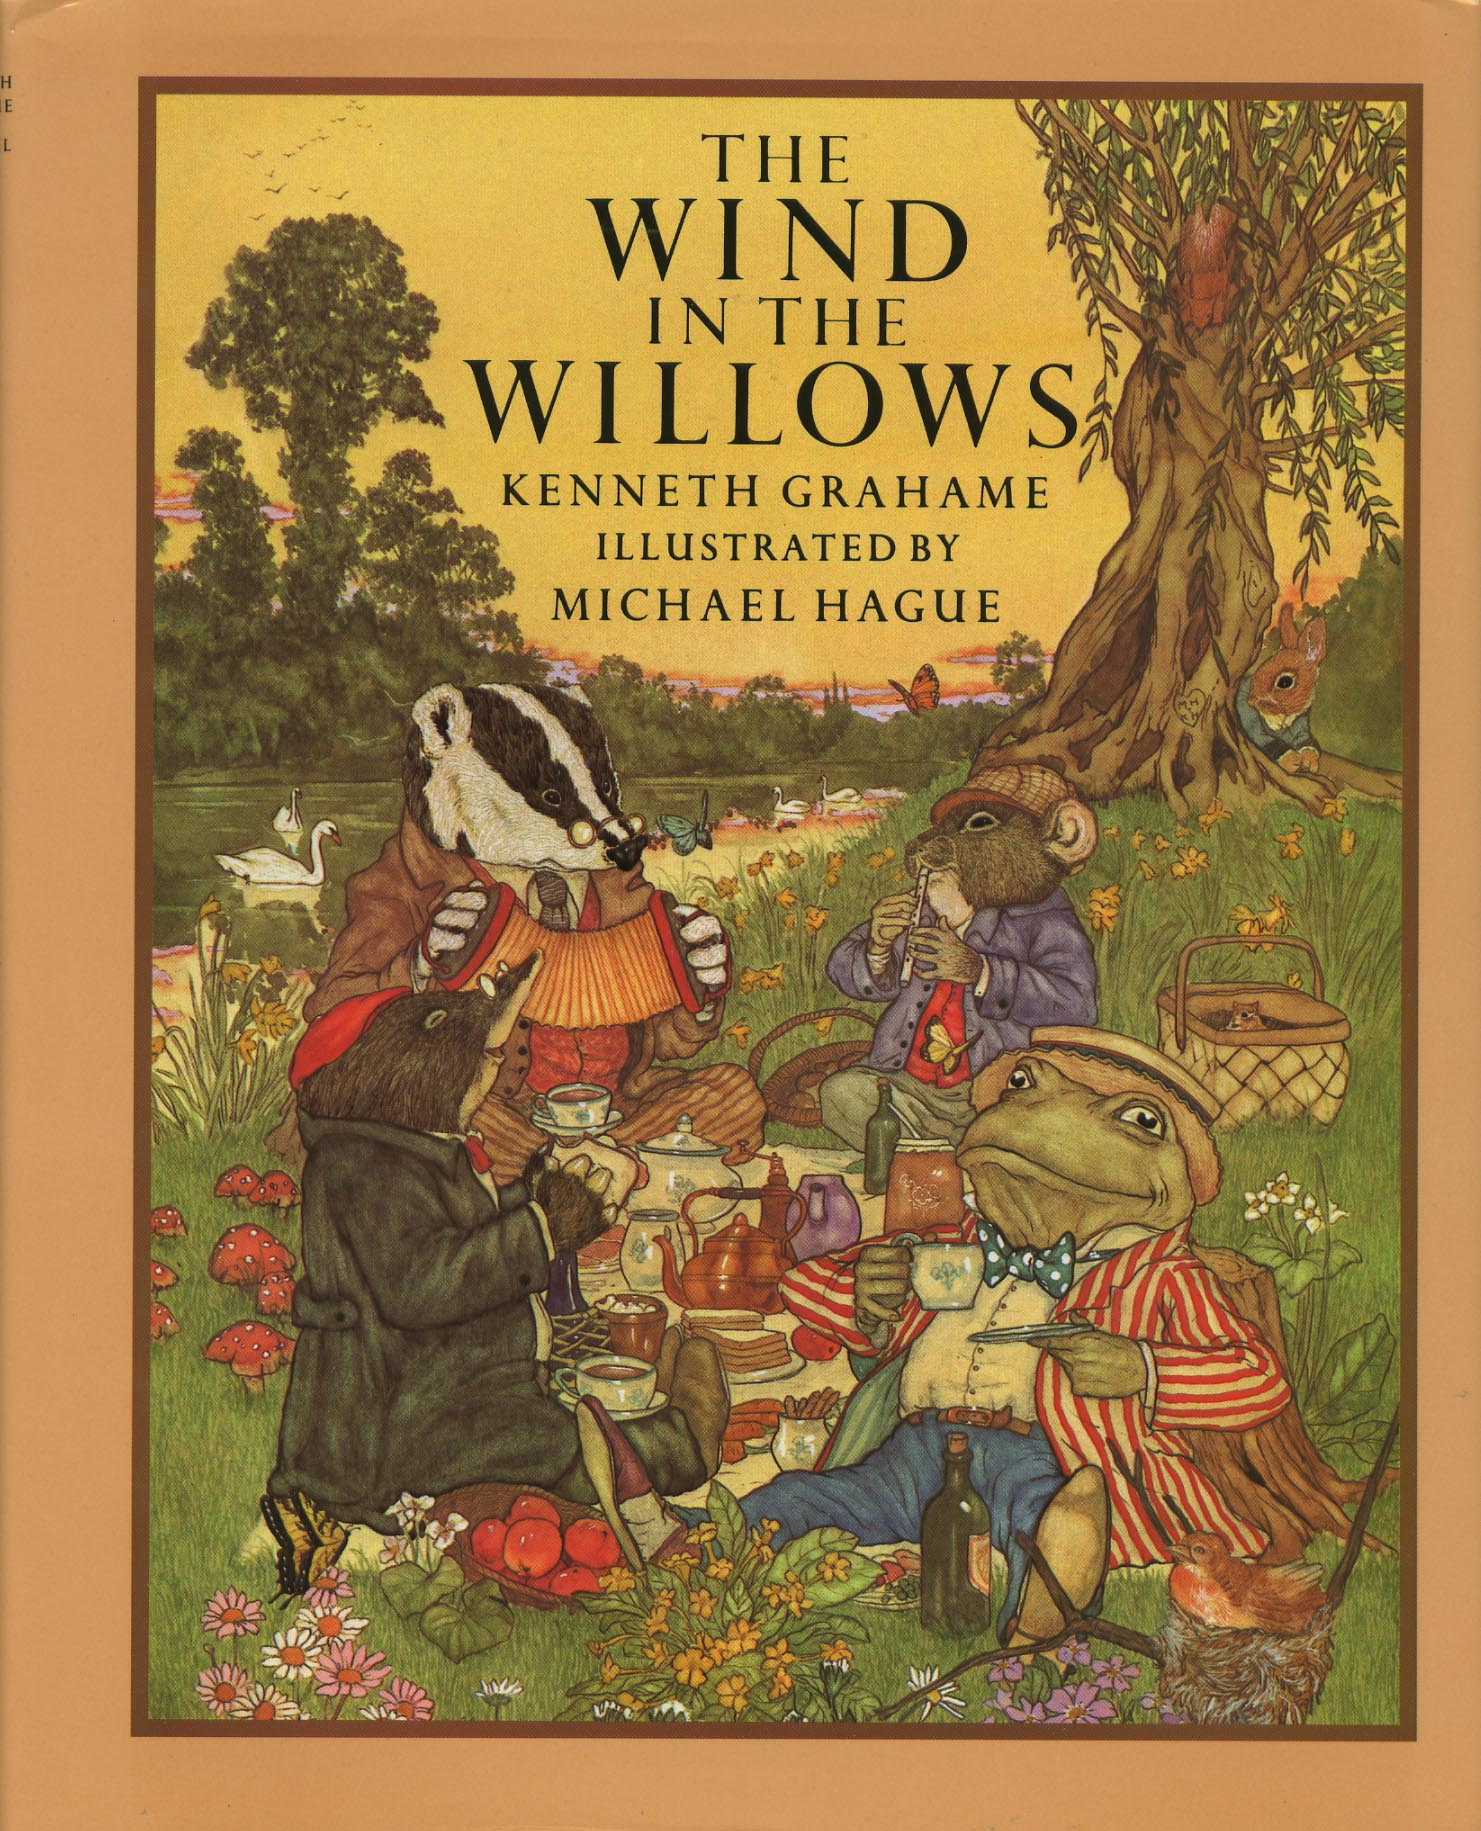 wind willows 1908 in Pop Culture, AKA The Last Time the Chicago Cubs Won a World Series Title